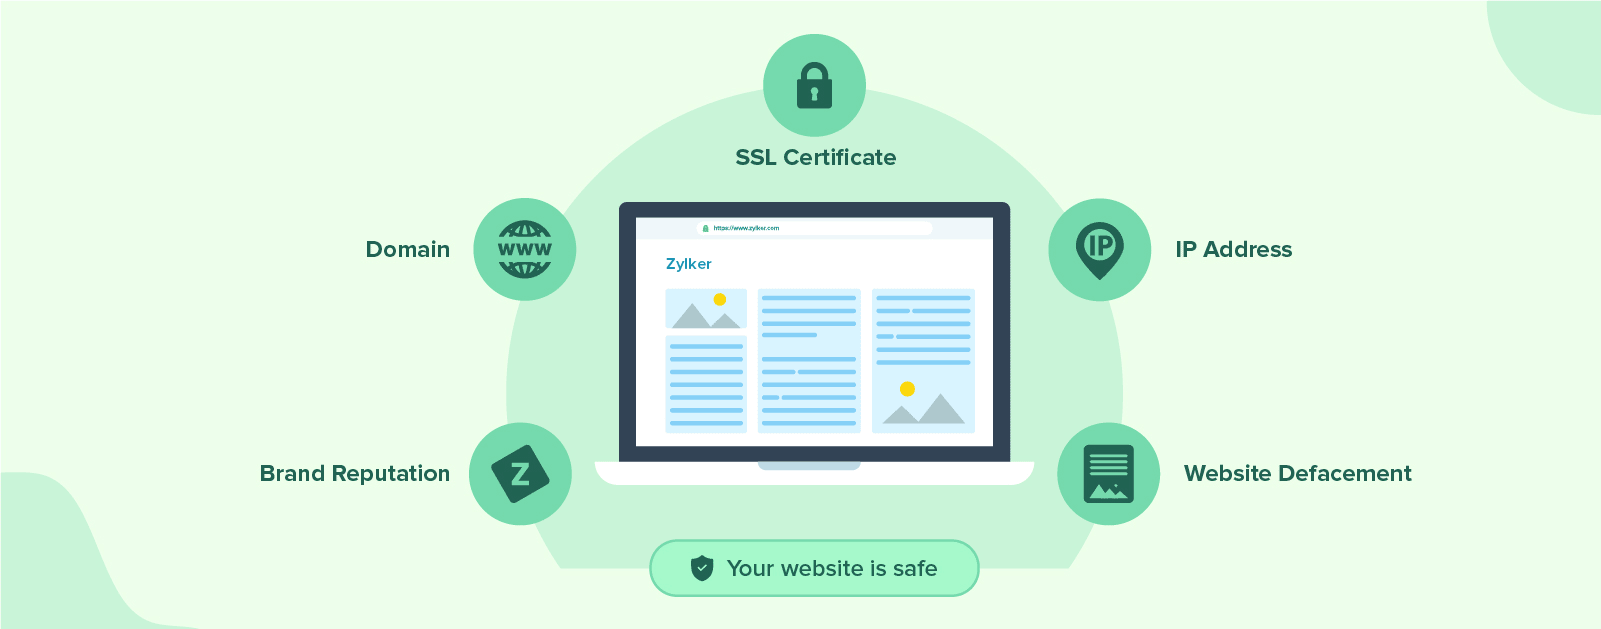 Guidelines to make your website secure